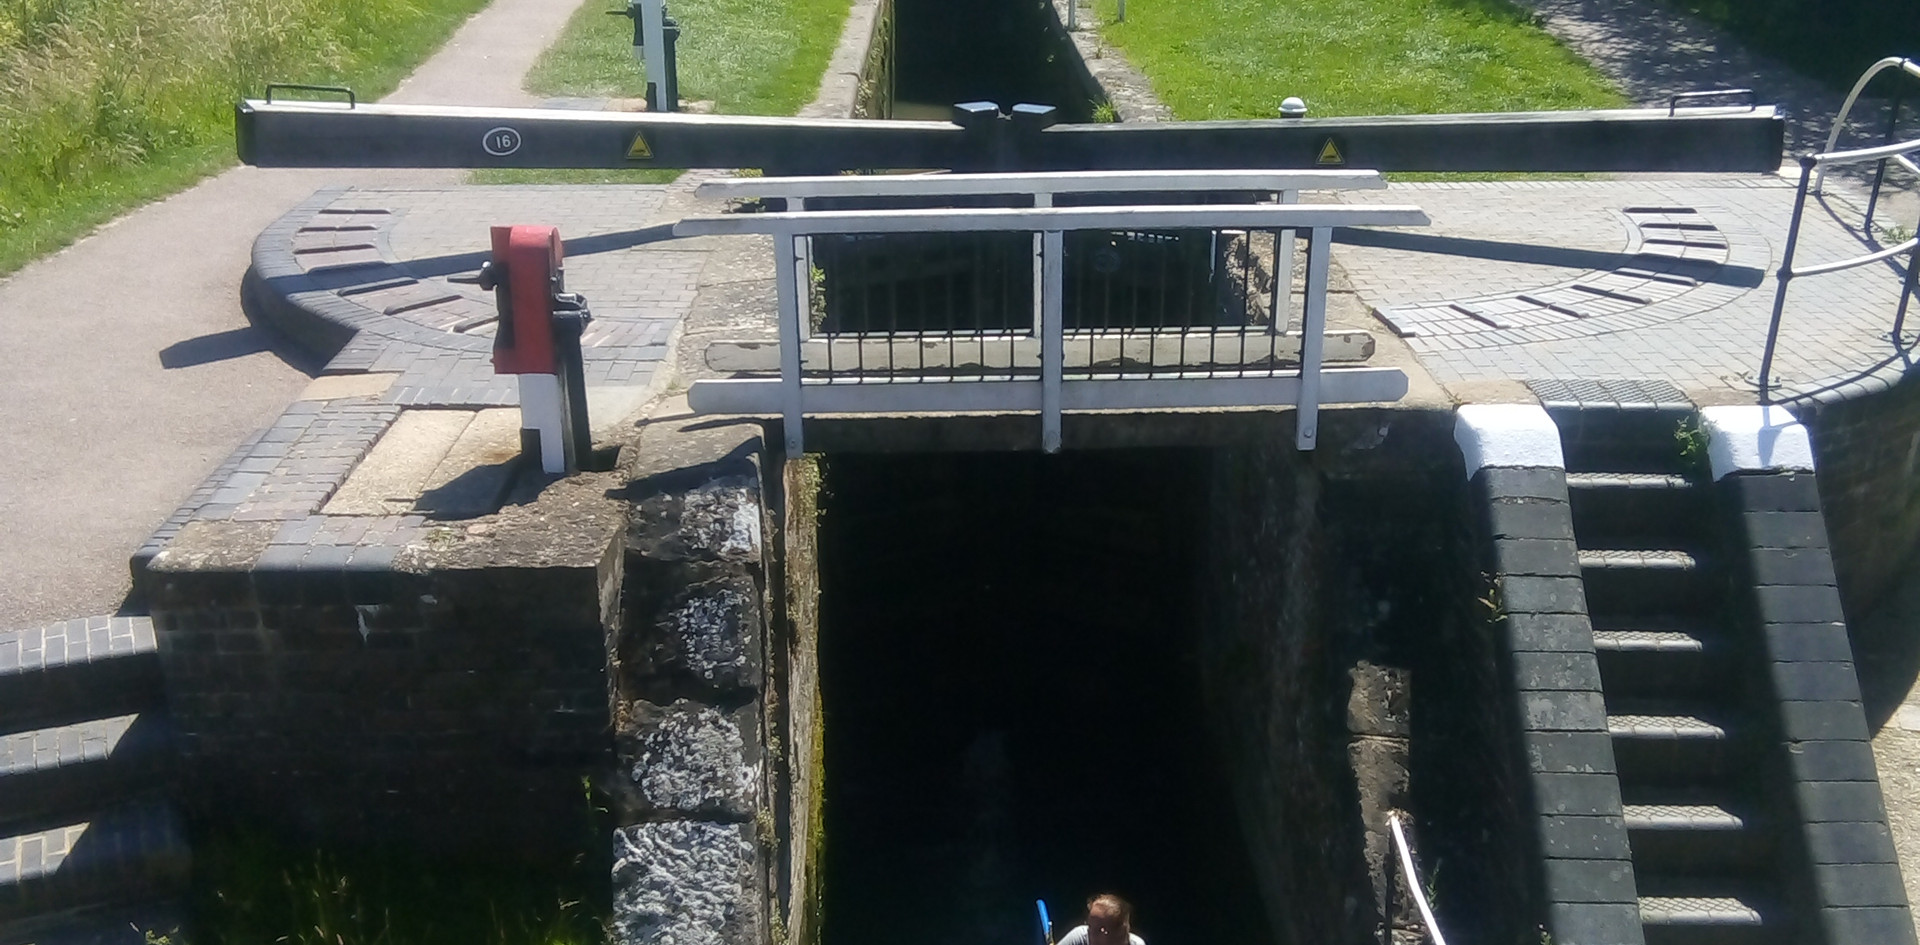 Coming down the locks